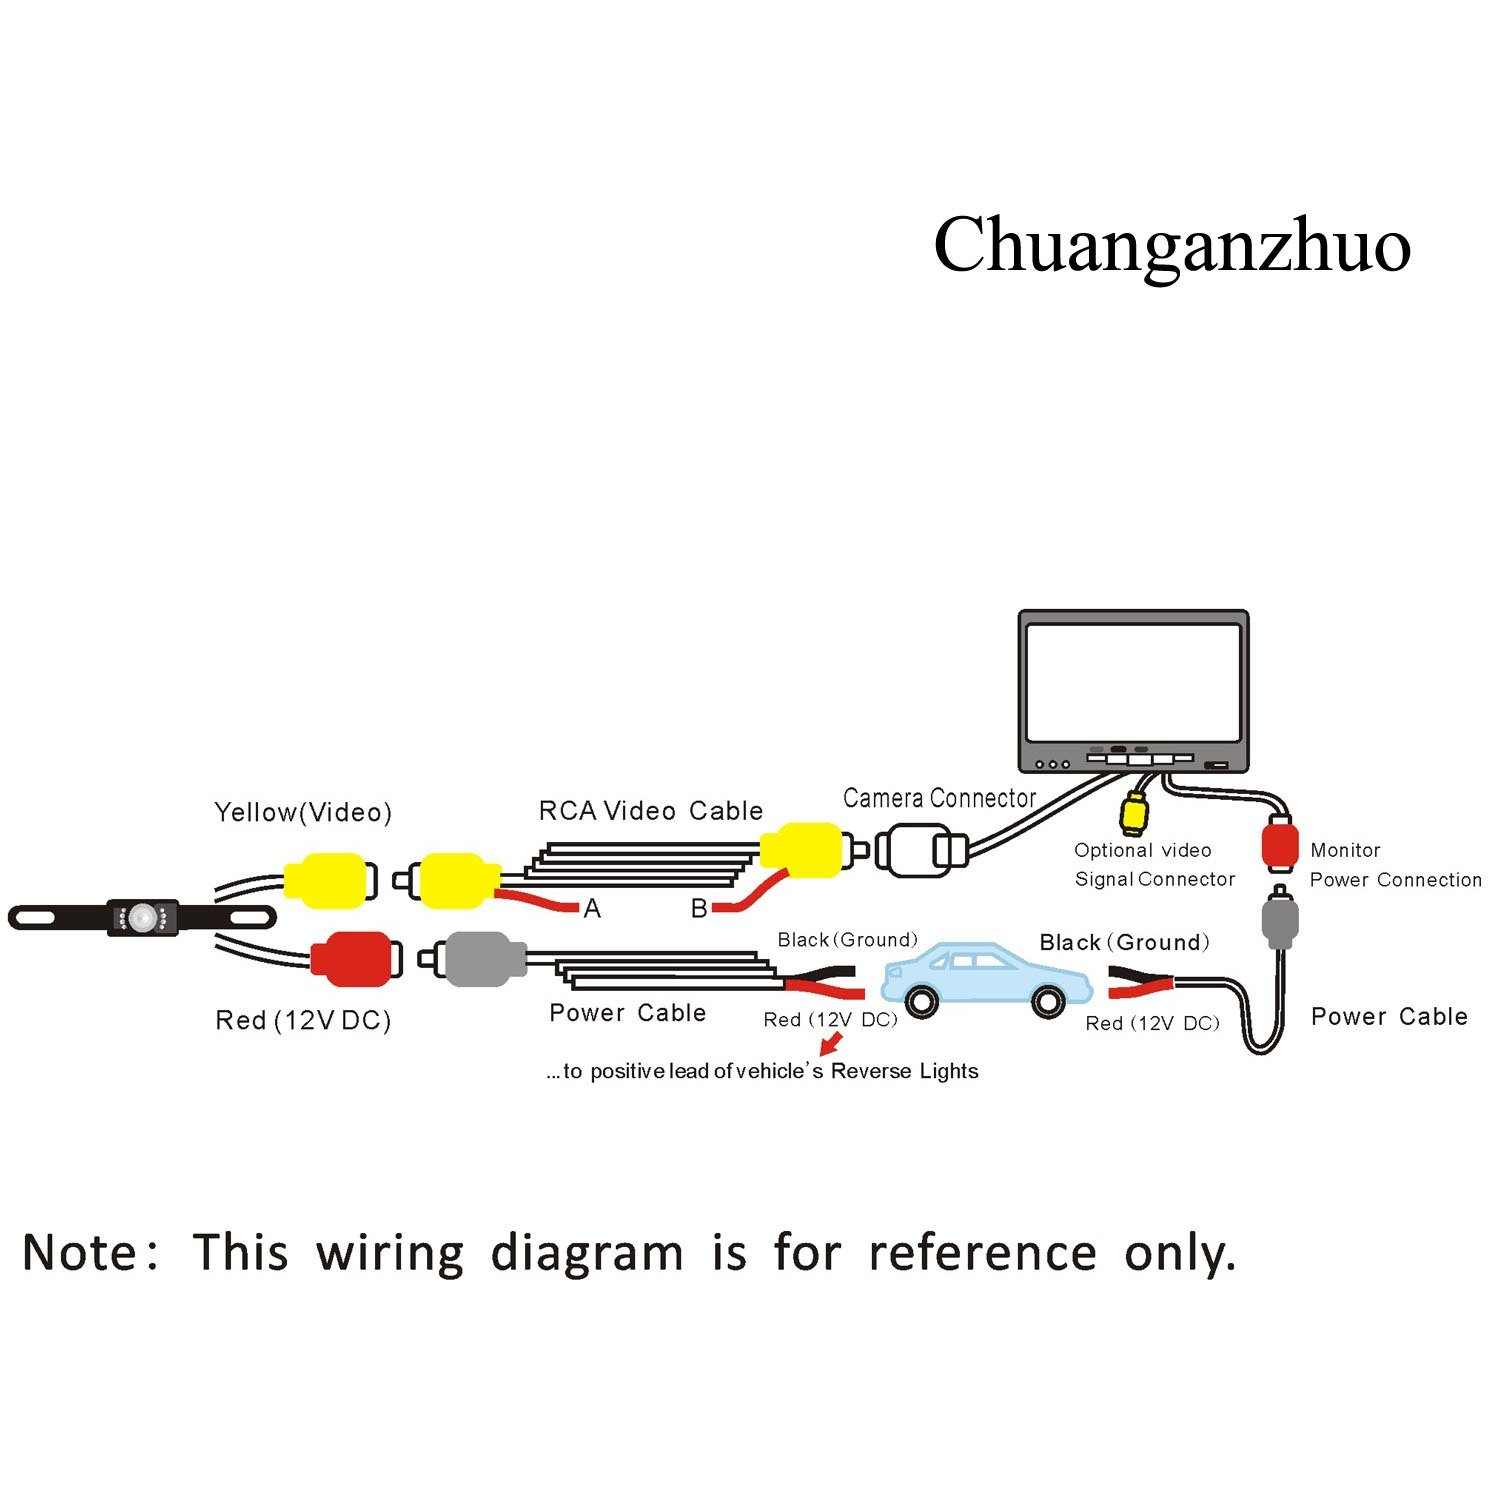 61eN9cMJzuL._SL1500_ amazon com backup camera and monitor kit, chuanganzhuo license backup camera wiring diagram at sewacar.co